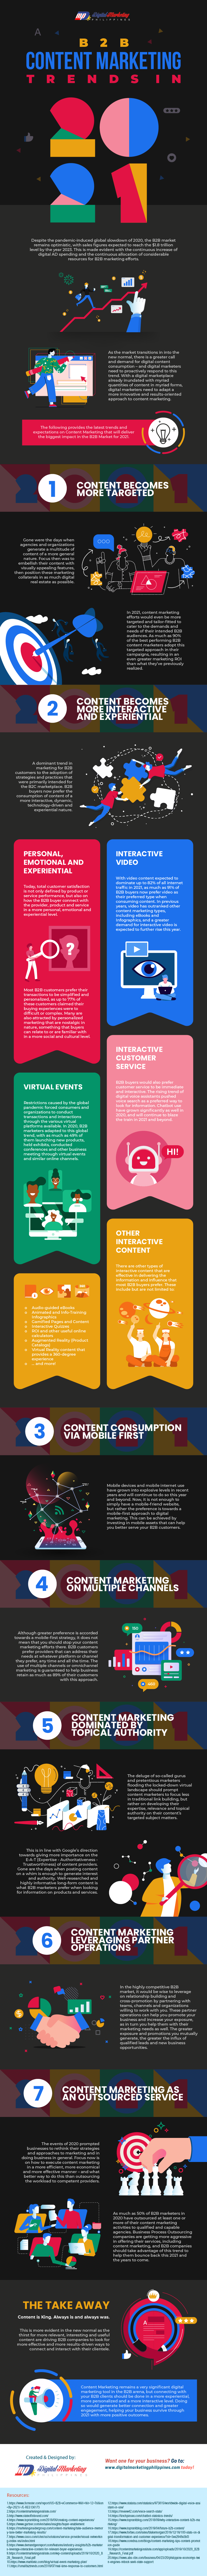 B2B Content Marketing Trends in 2021 Infographic